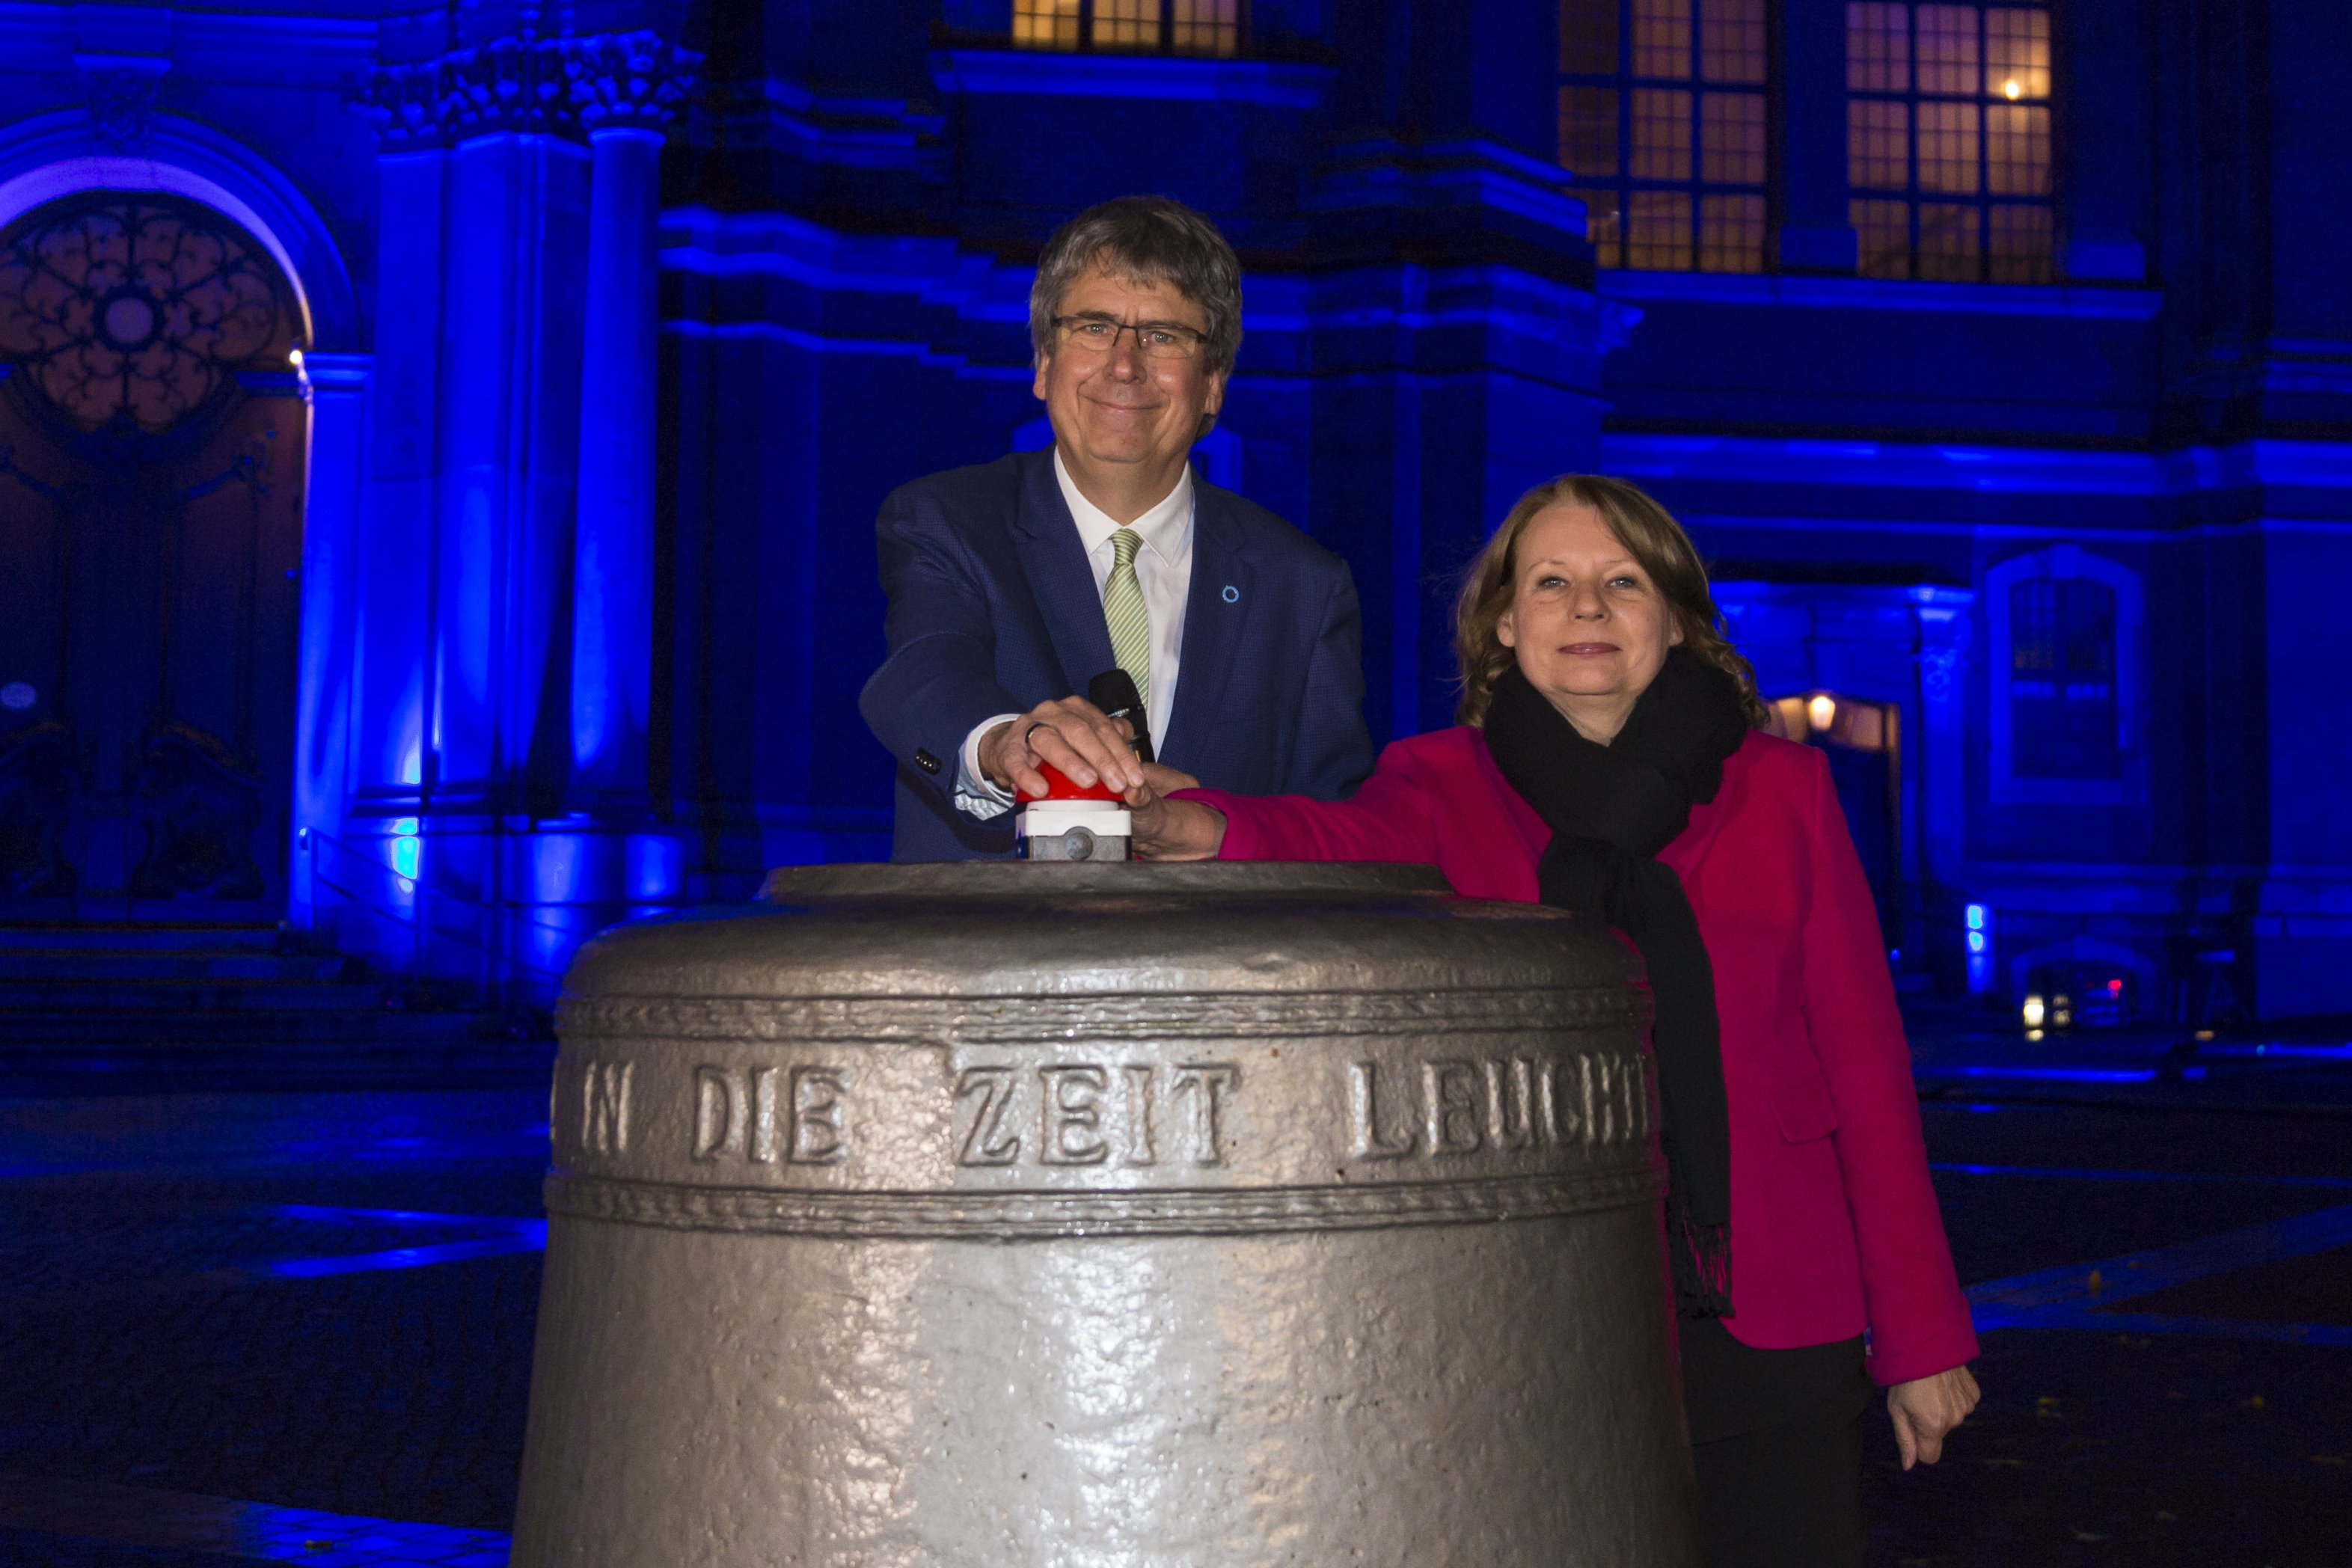 Illumination des Michels in Hamburg - Weltdiabetestag 2017